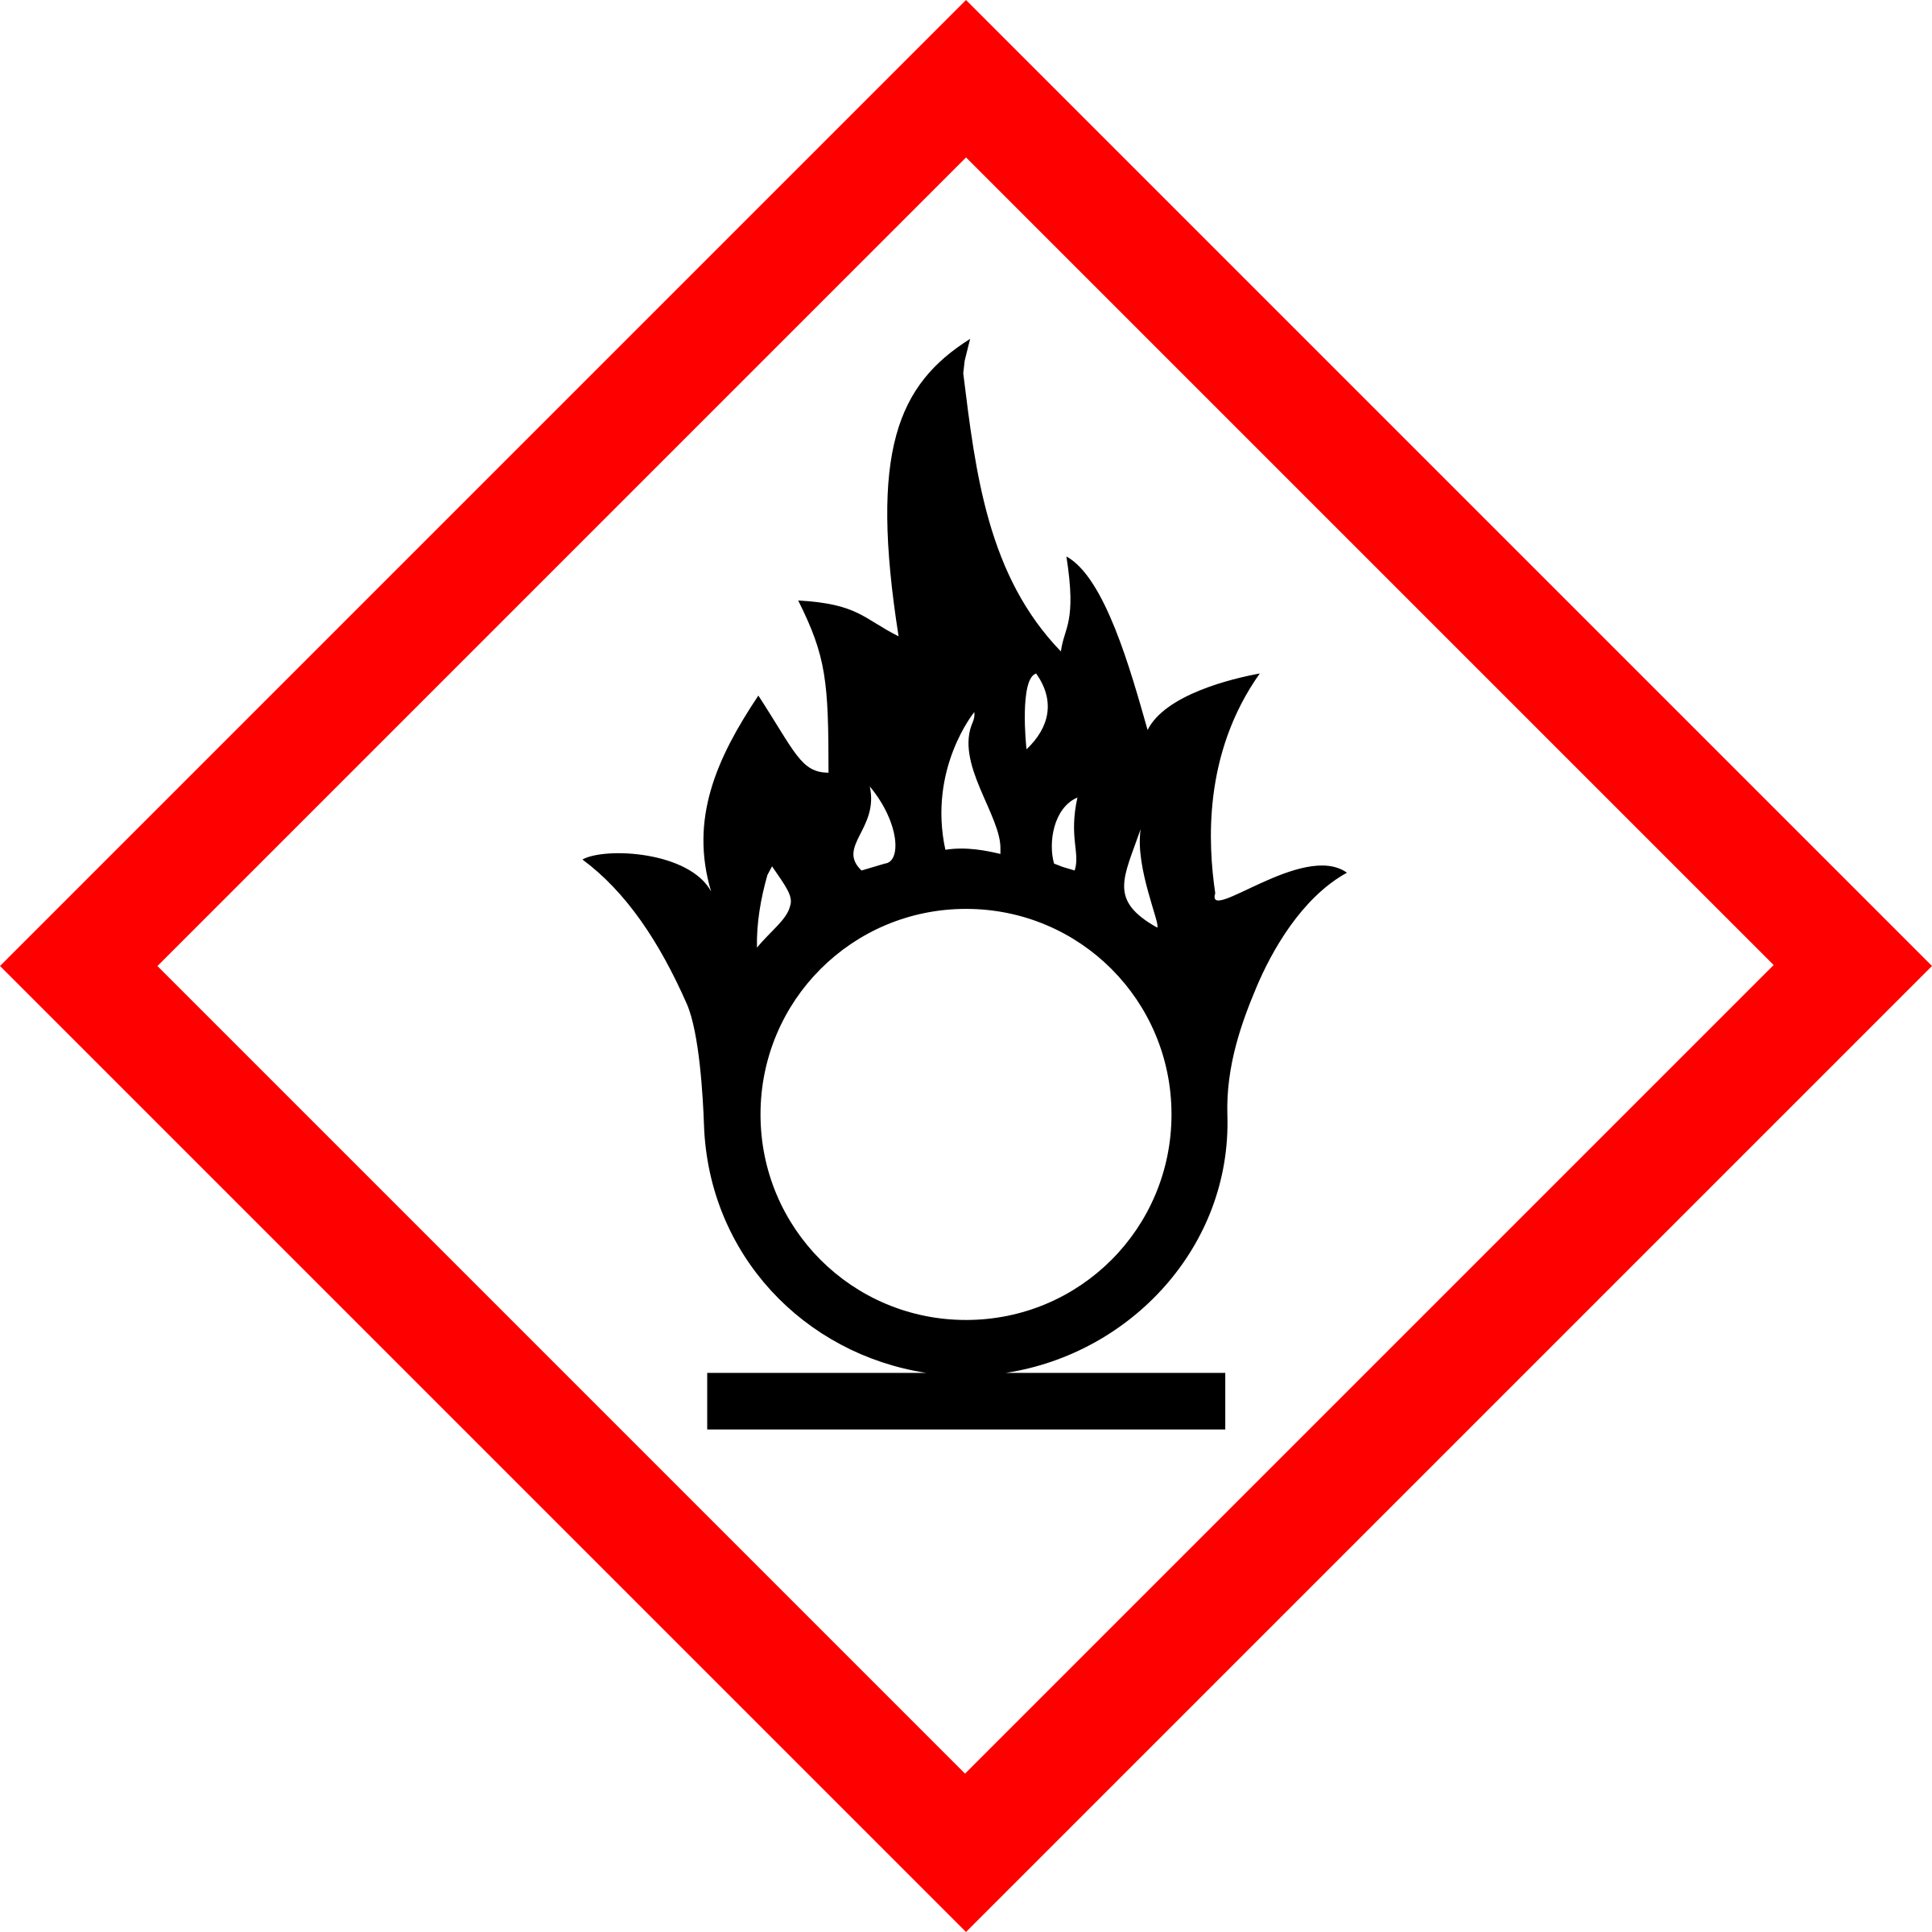 Oxidant substances - Comburente (Agente oxidante) by laftello